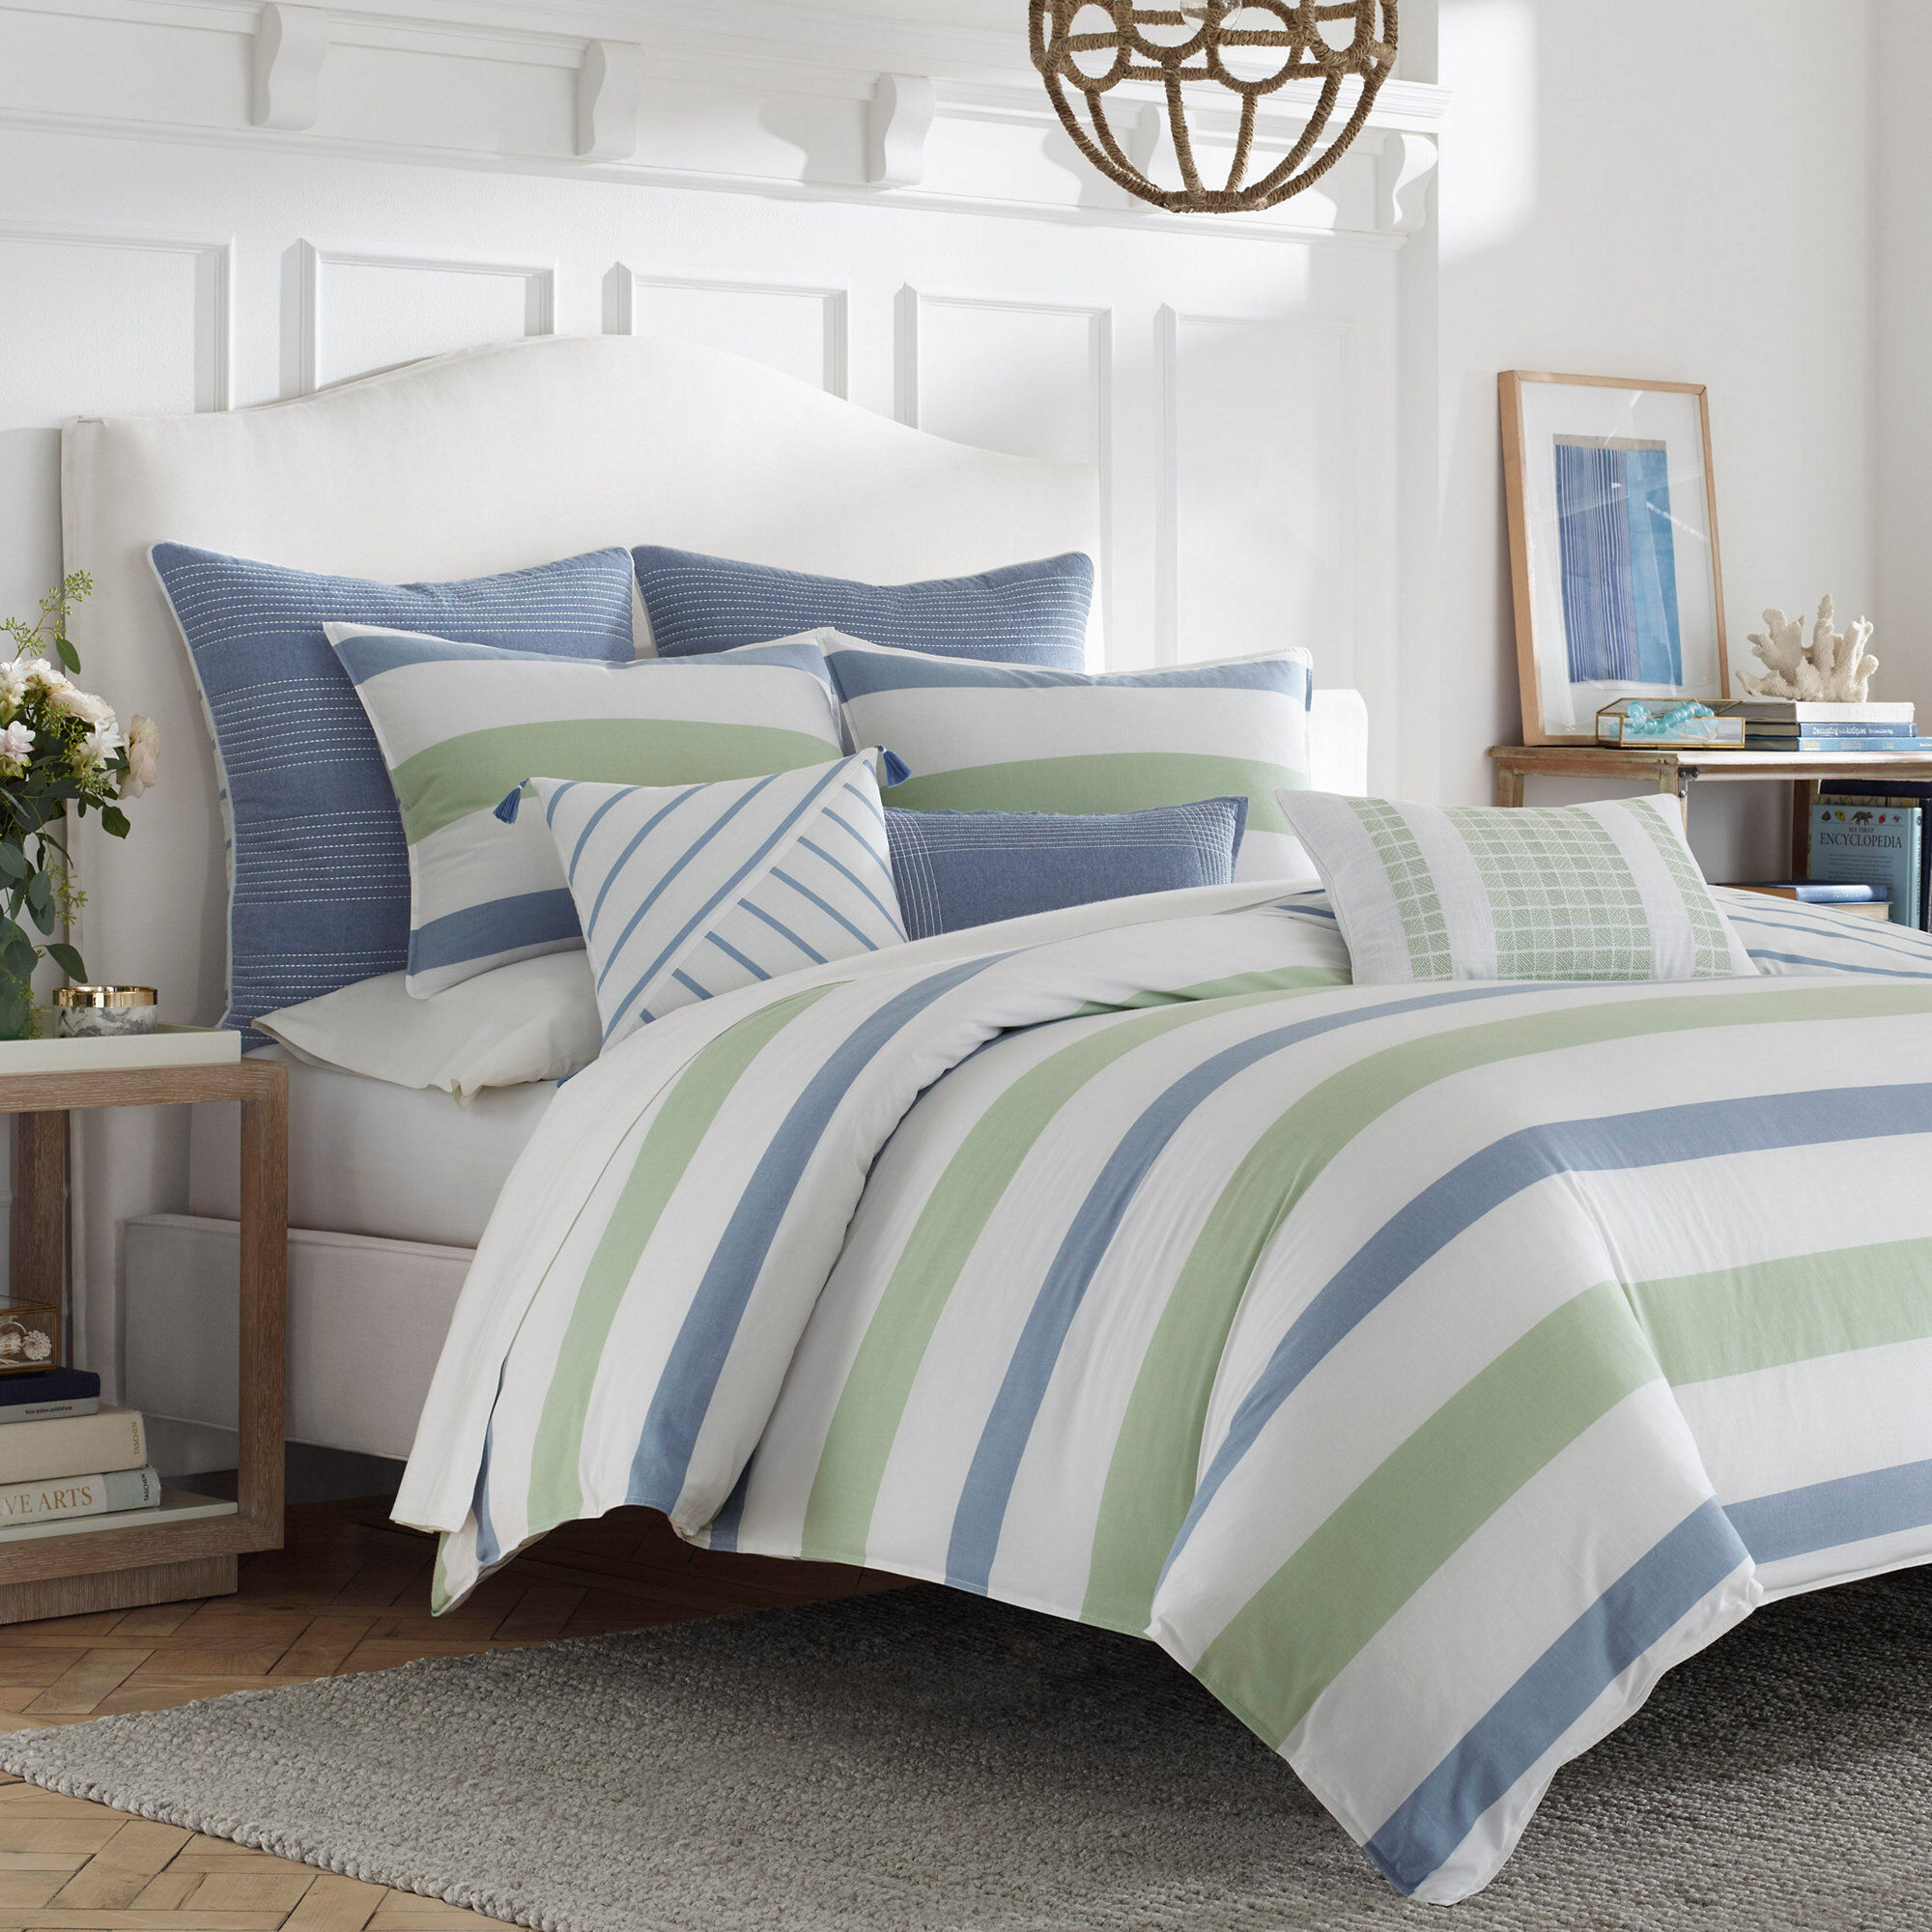 Duvet And Comforter Sets Norwich Blue Comforter Set